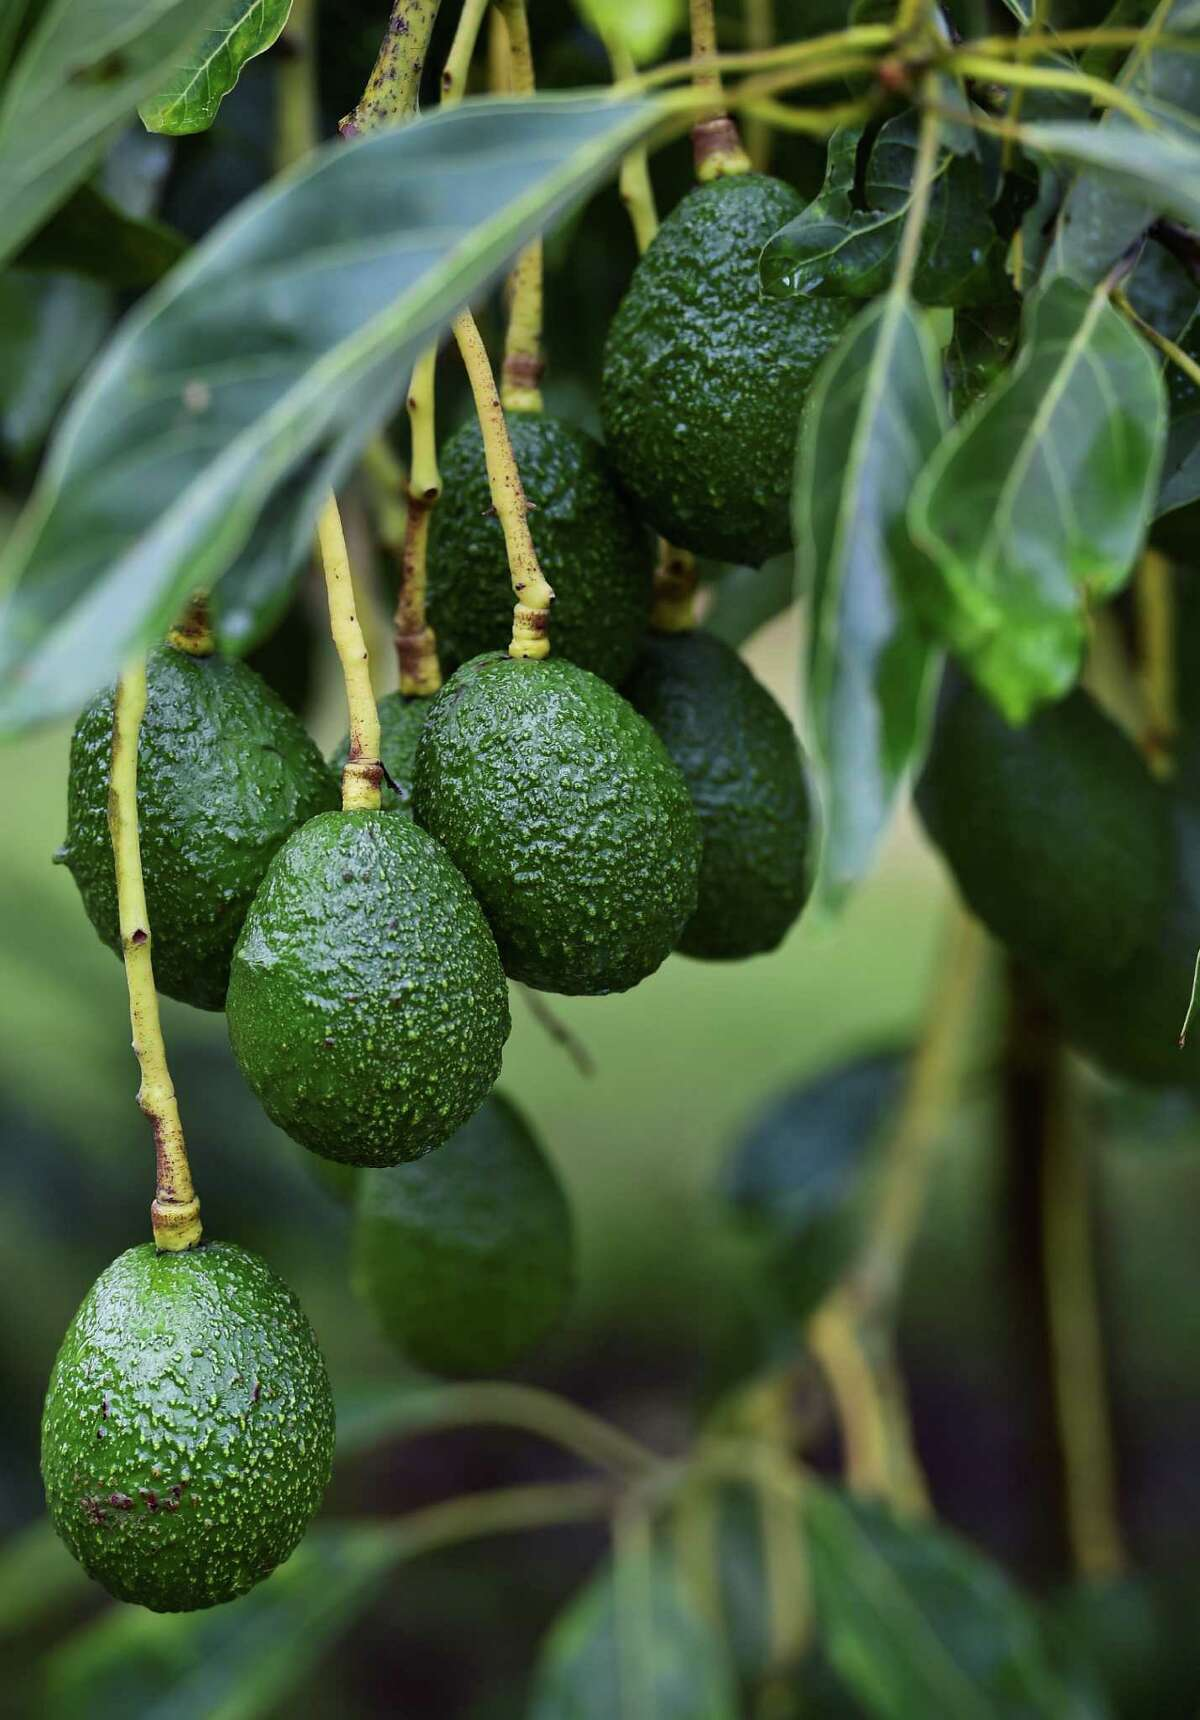 A dispute between avocado growers and packing companies in Mexico left U.S. wholesalers scrambling to find new sources for the knobby green fruit wherever they could, upping shipments from Chile, Peru and the Dominican Republic.